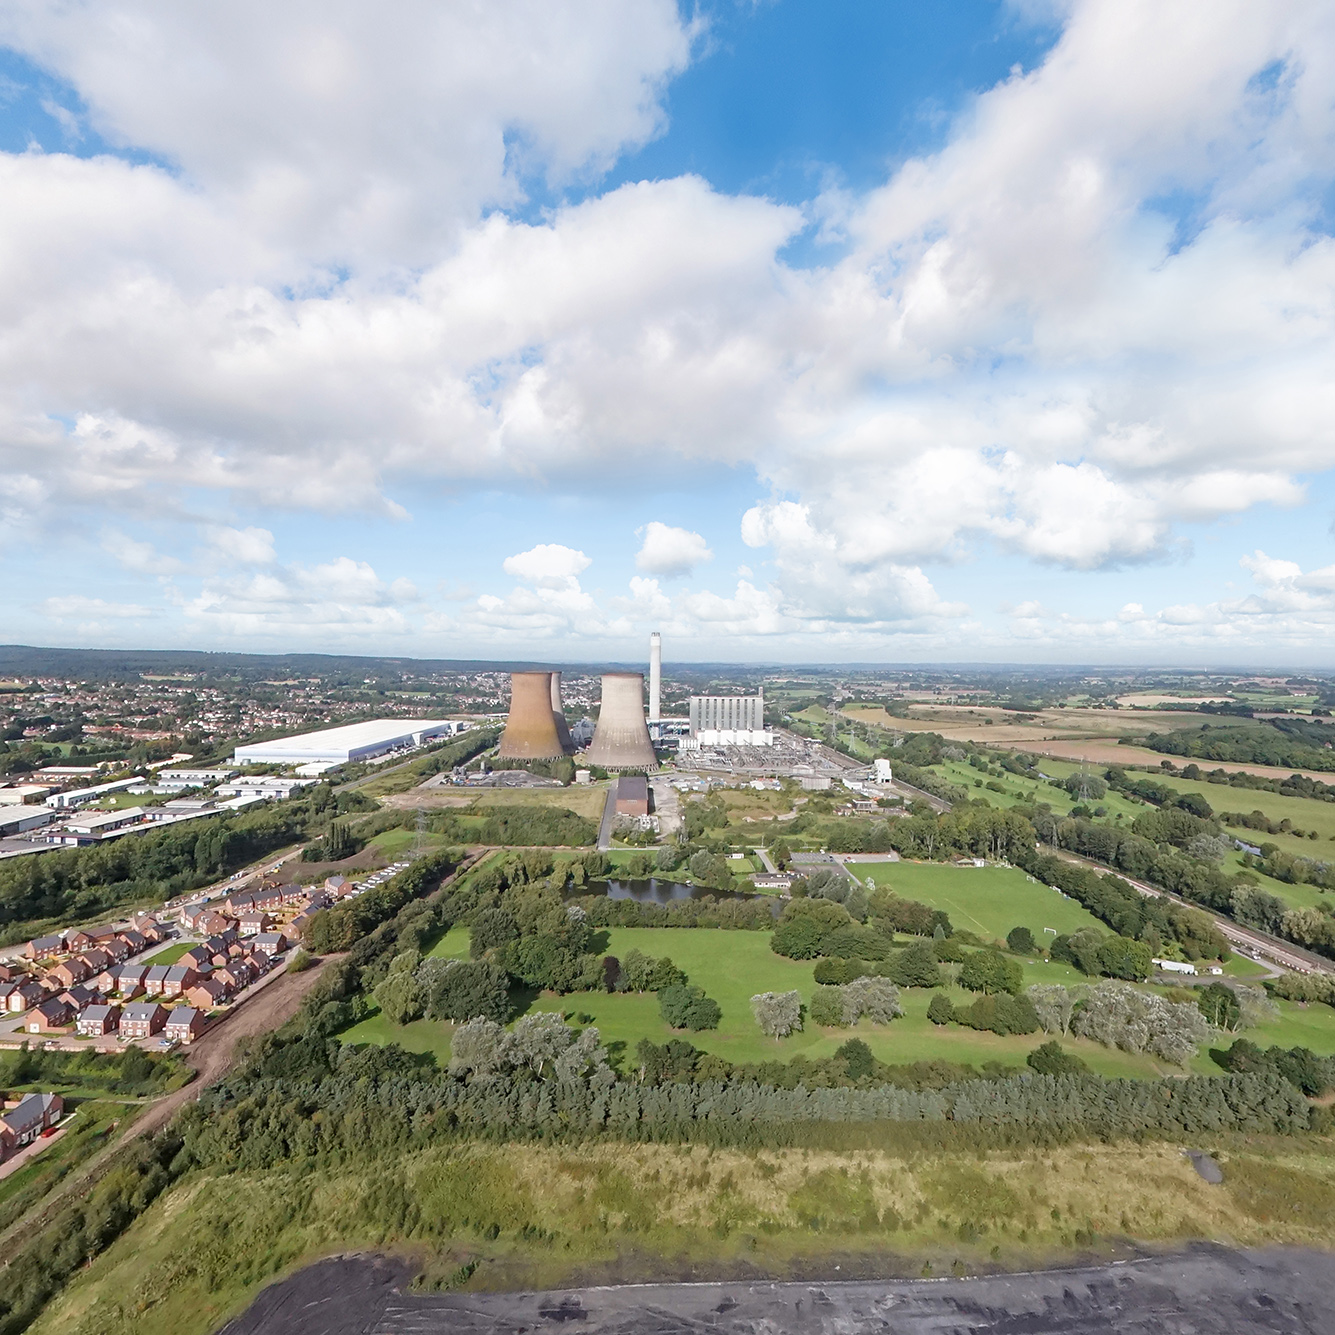 Rugeley and the power station